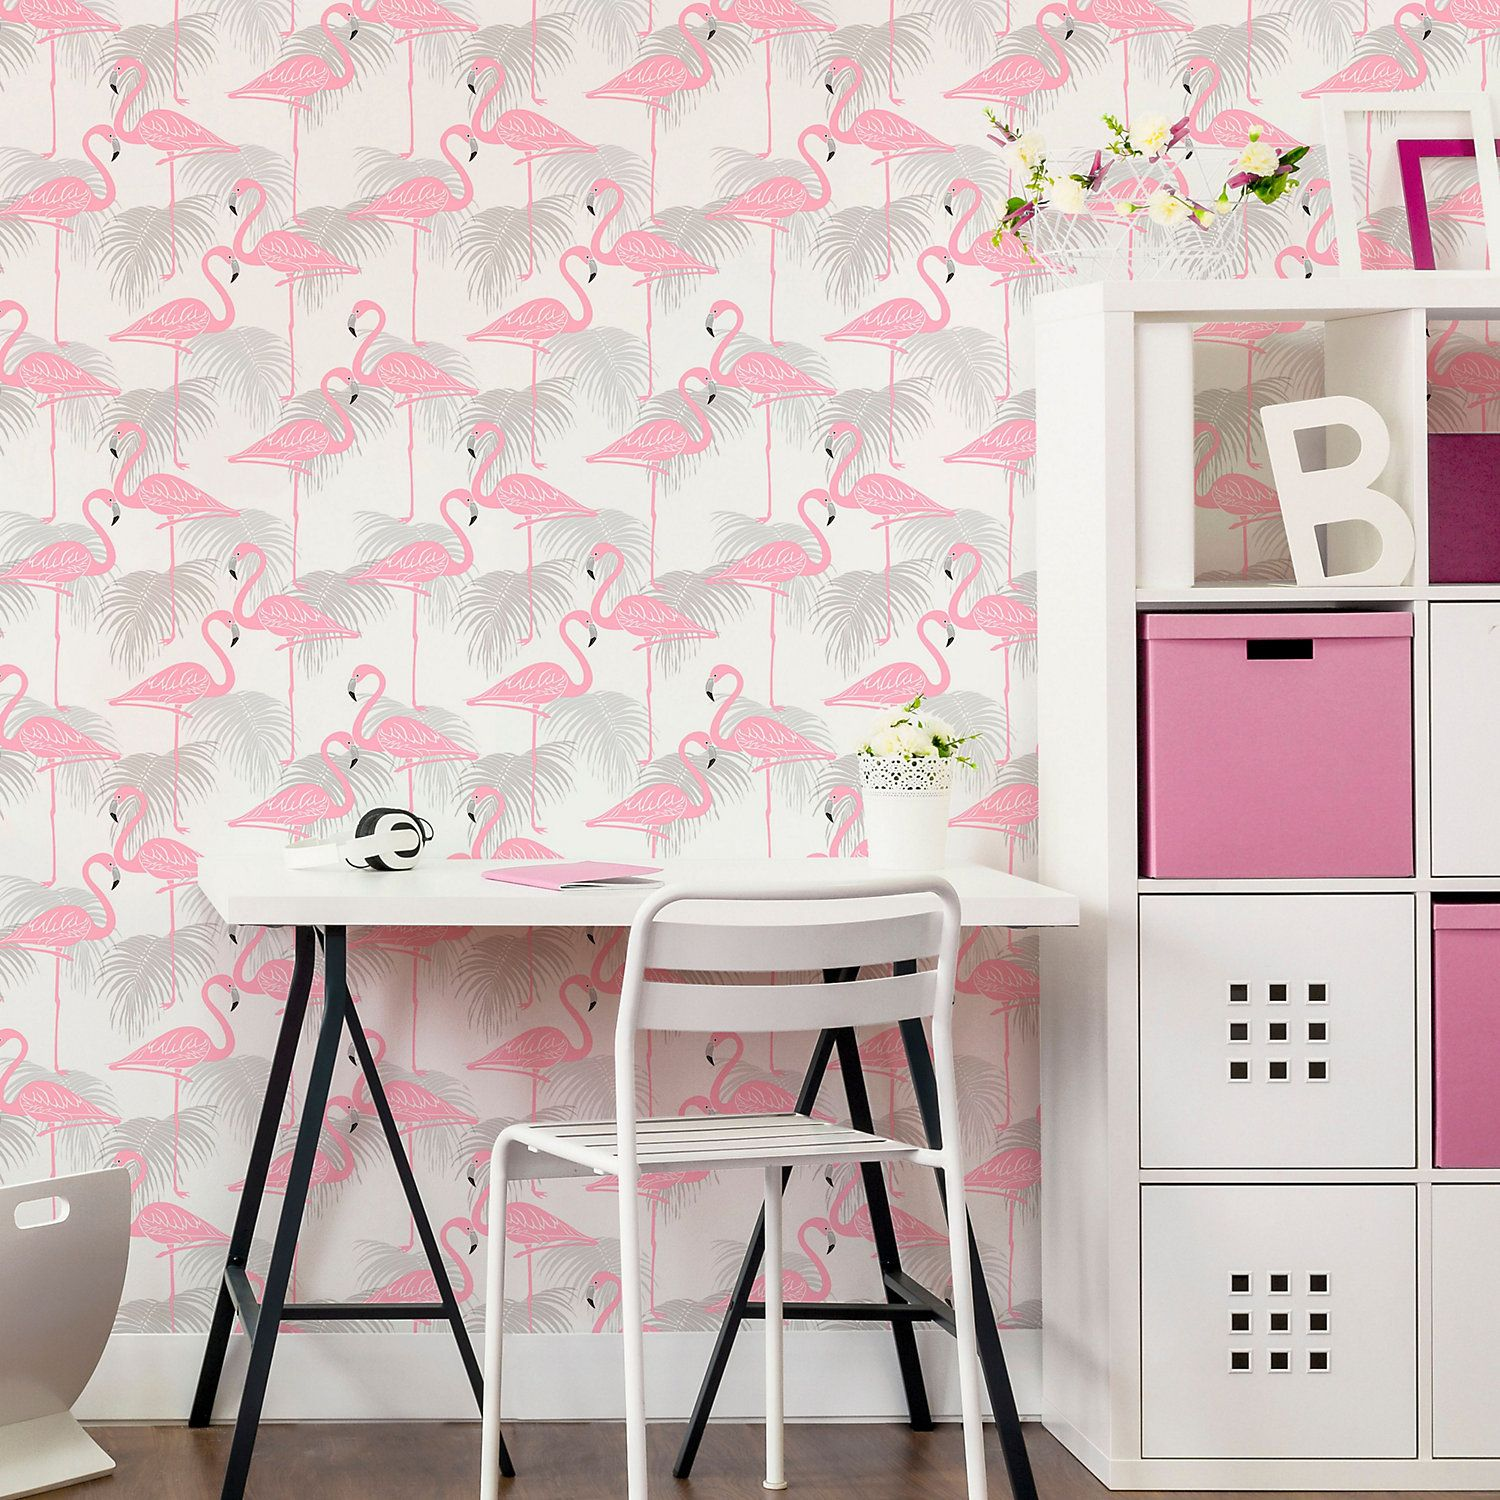 Fine décor Pink Flamingo Wallpaper Pink and green